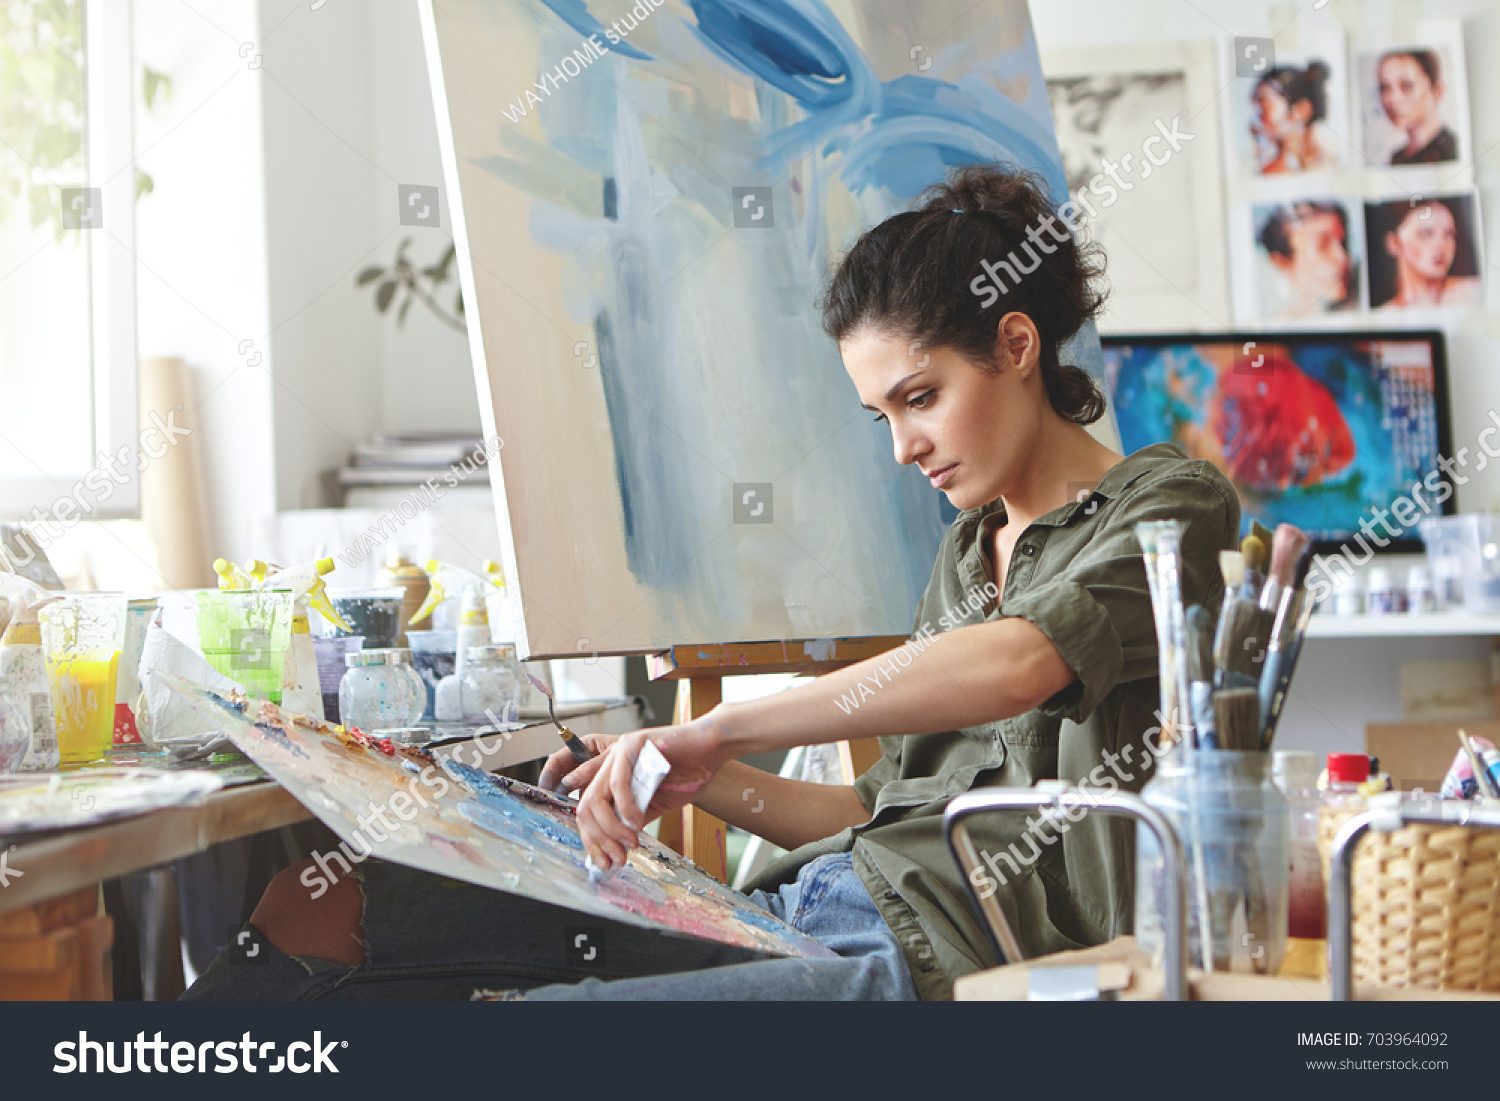 Young female student having classes at art studio, learning how to draw landscapes, trying to mix different watercolors on cardboard. Concentrated woman with dark hair, dressed casually, painting #703964092